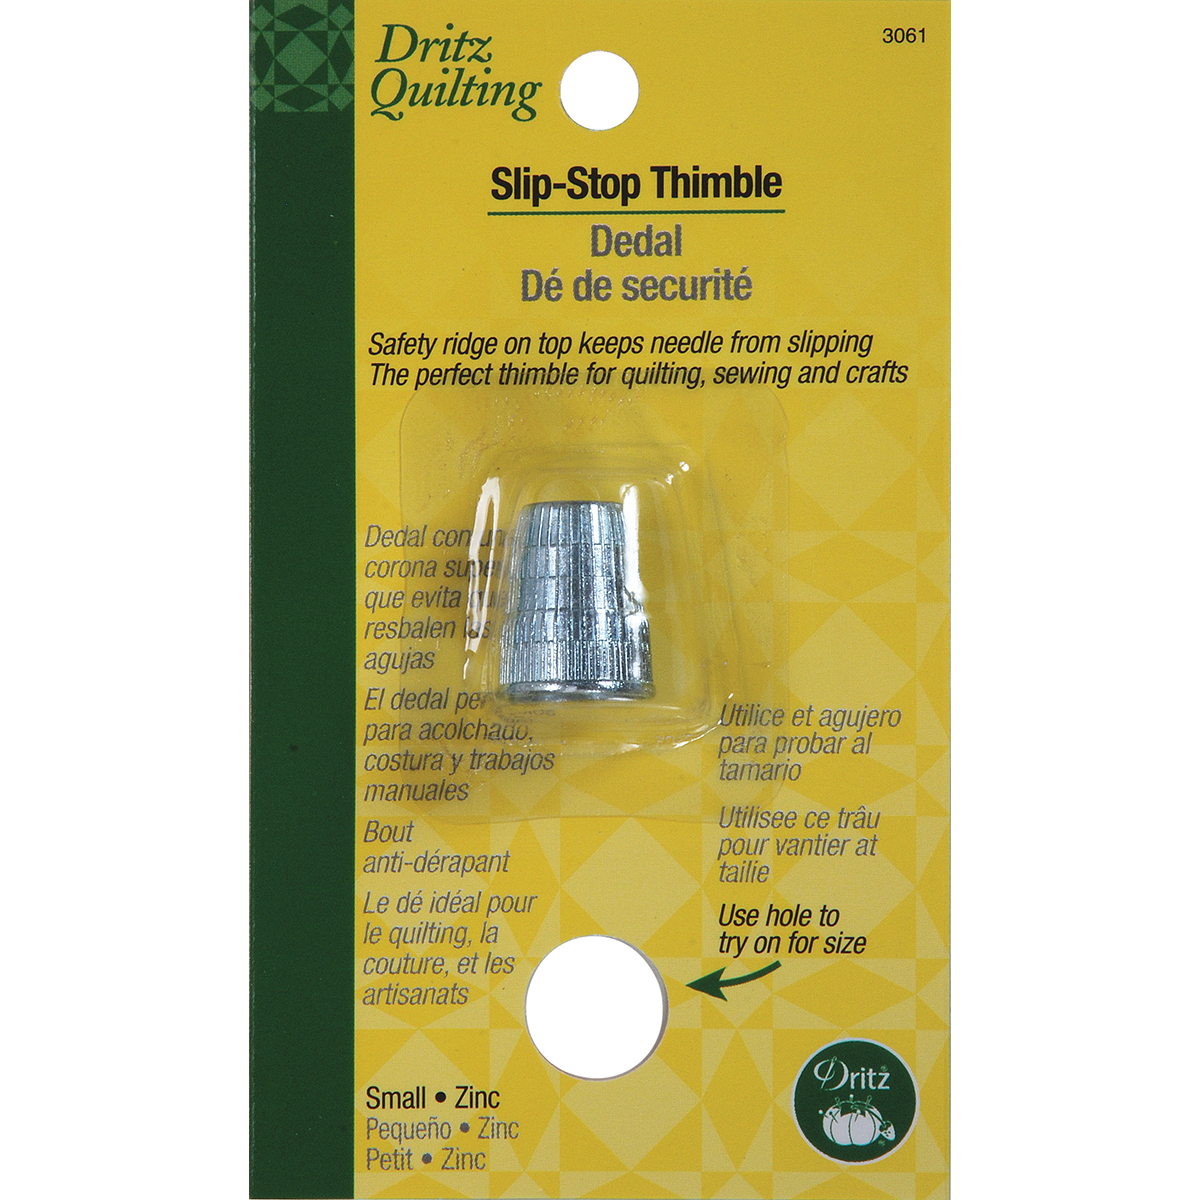 Dritz Quilting Slip Stop Thimble-Small